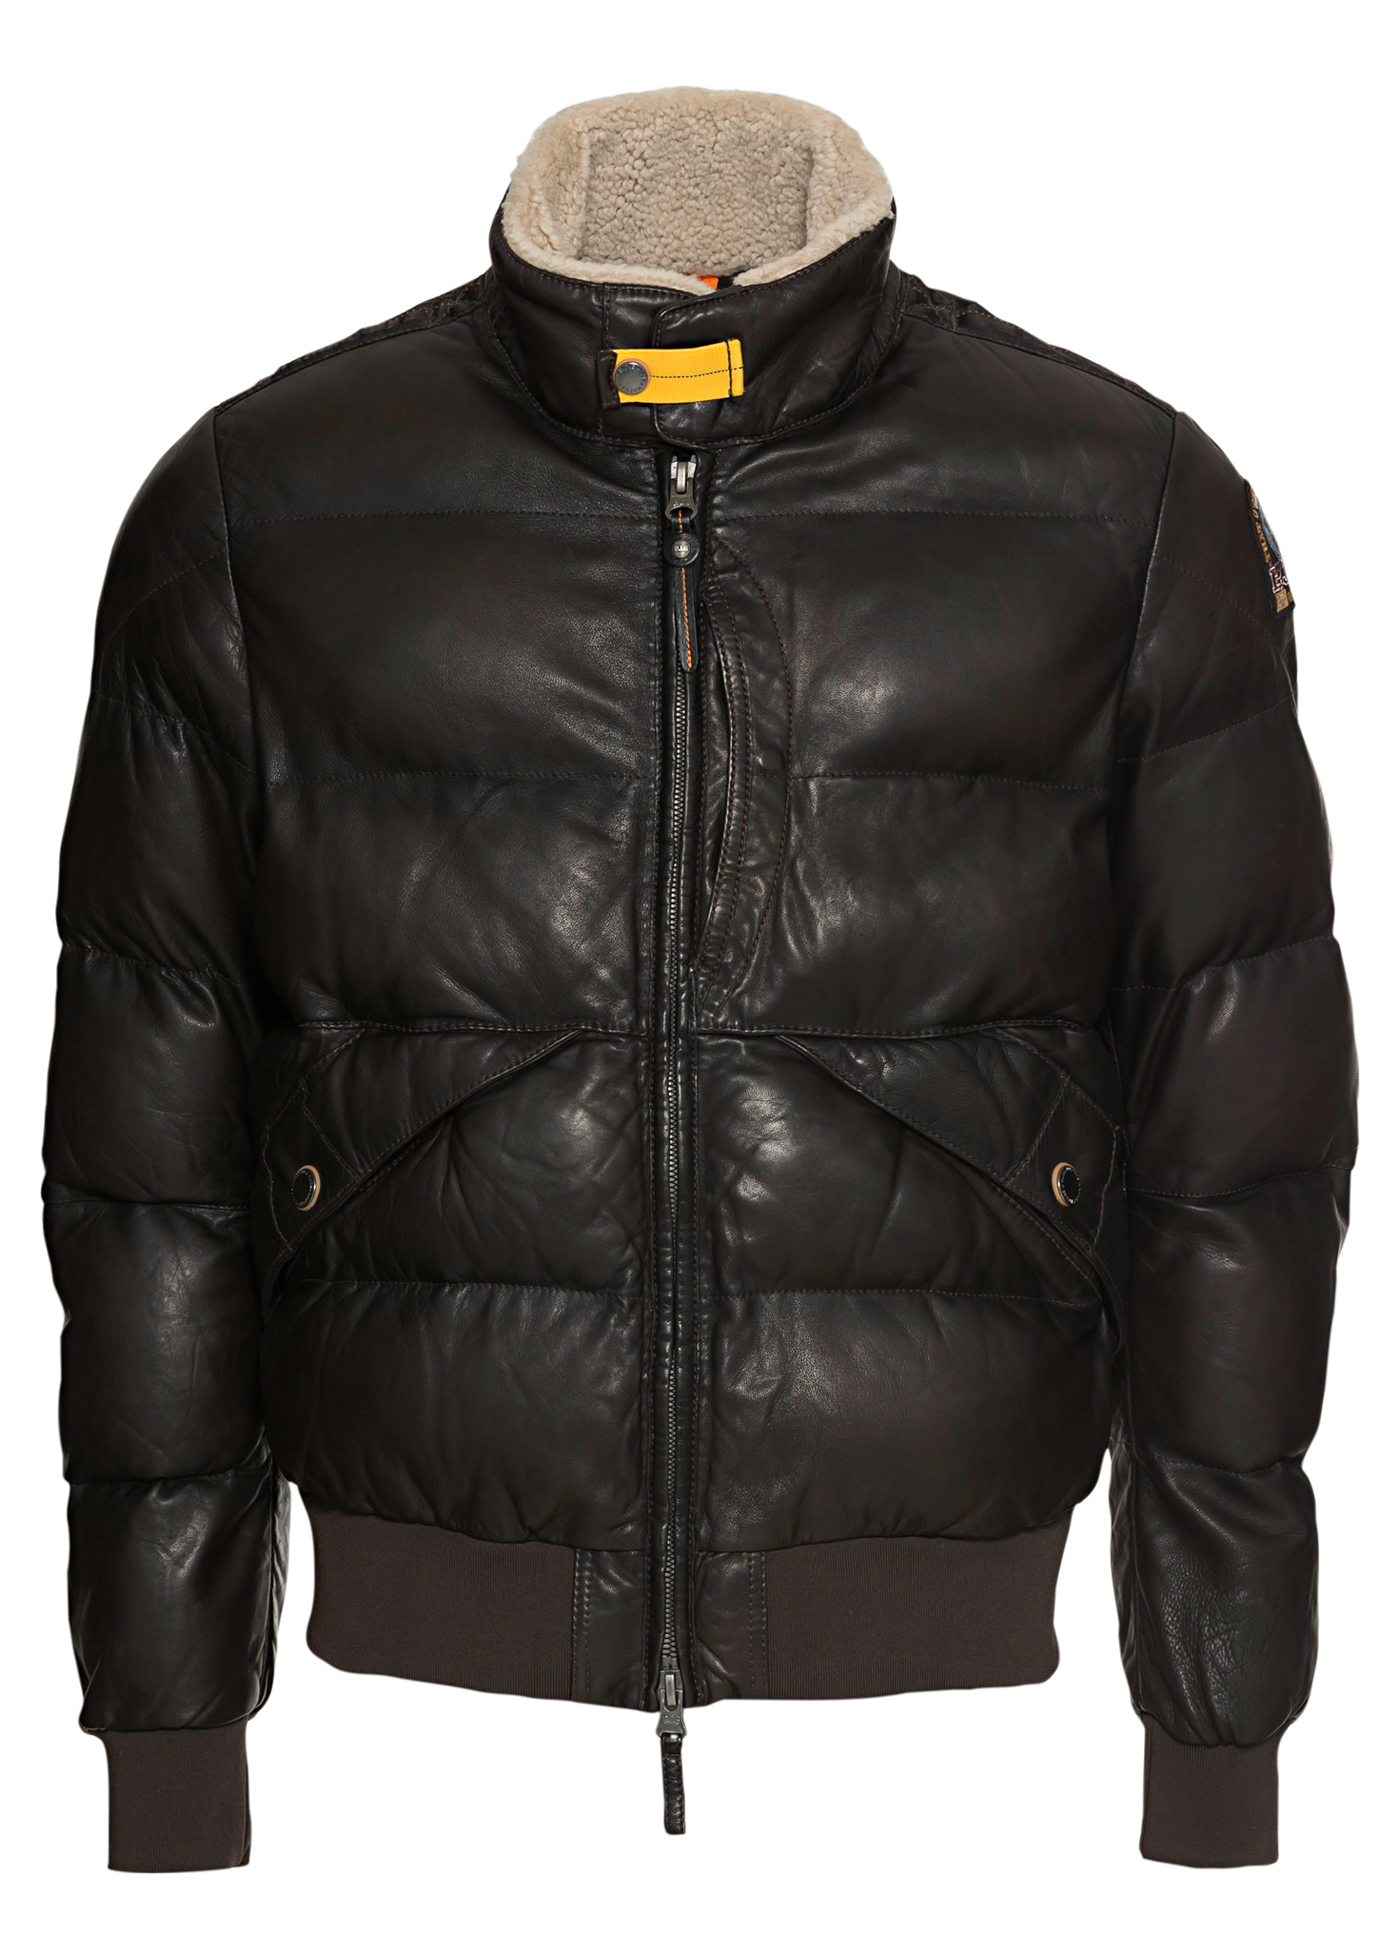 ALF LEATHER - MAN image number 0